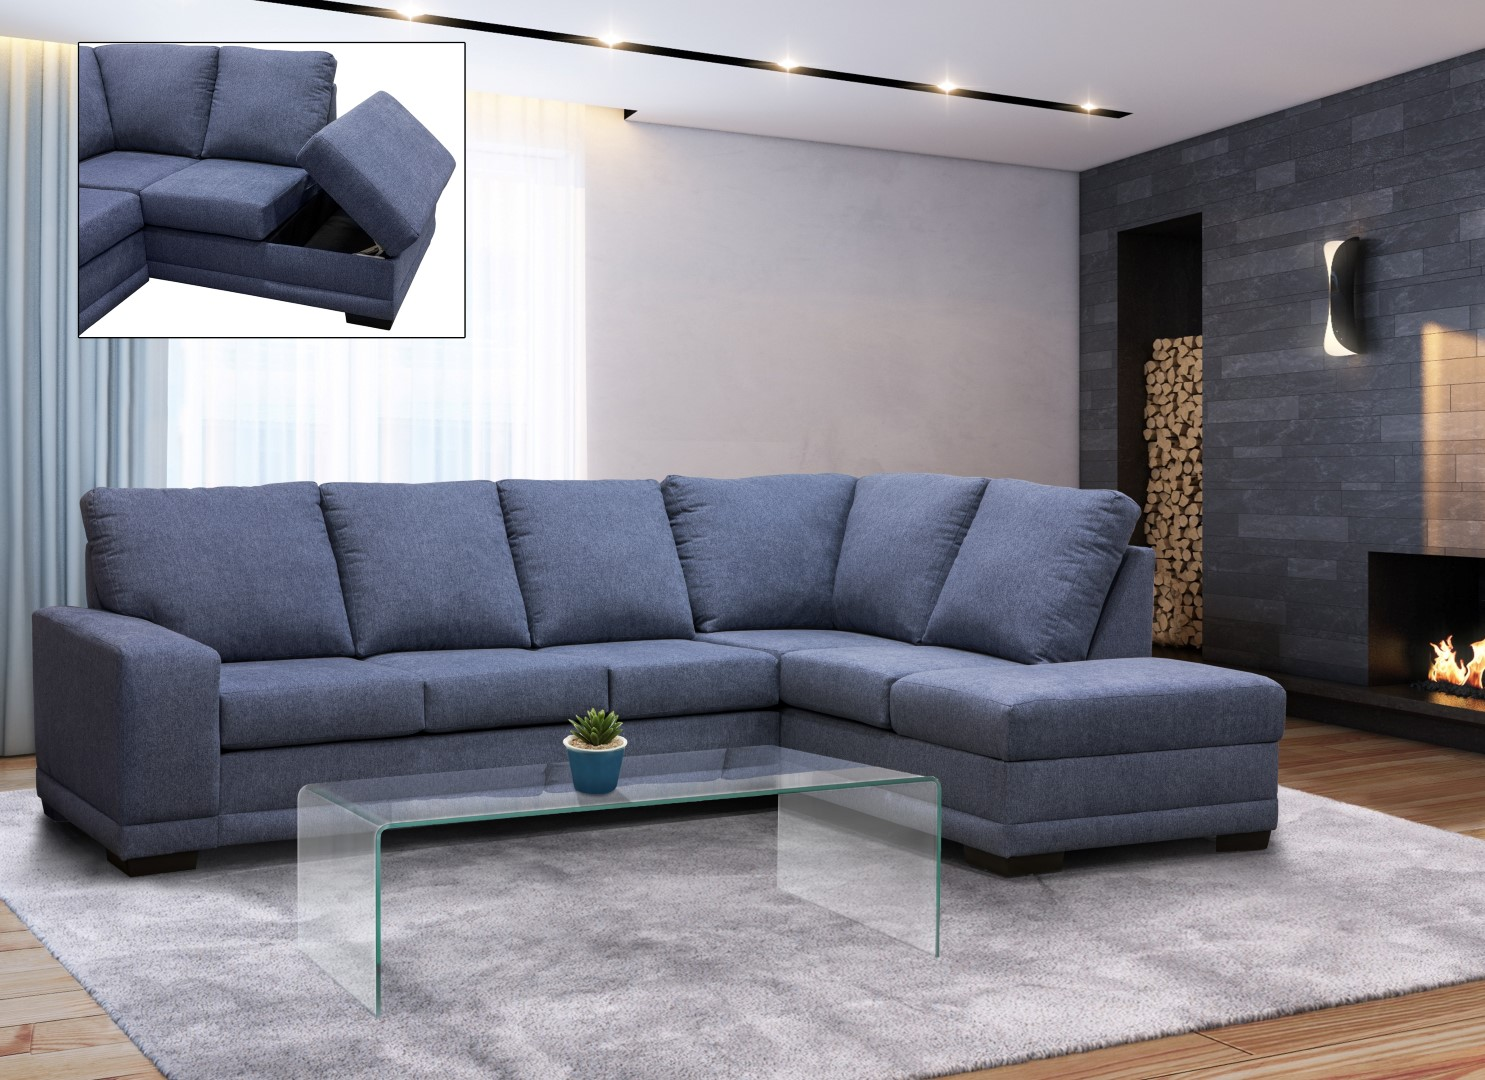 Edimbourg Fabric Sectional made in Canada 21625